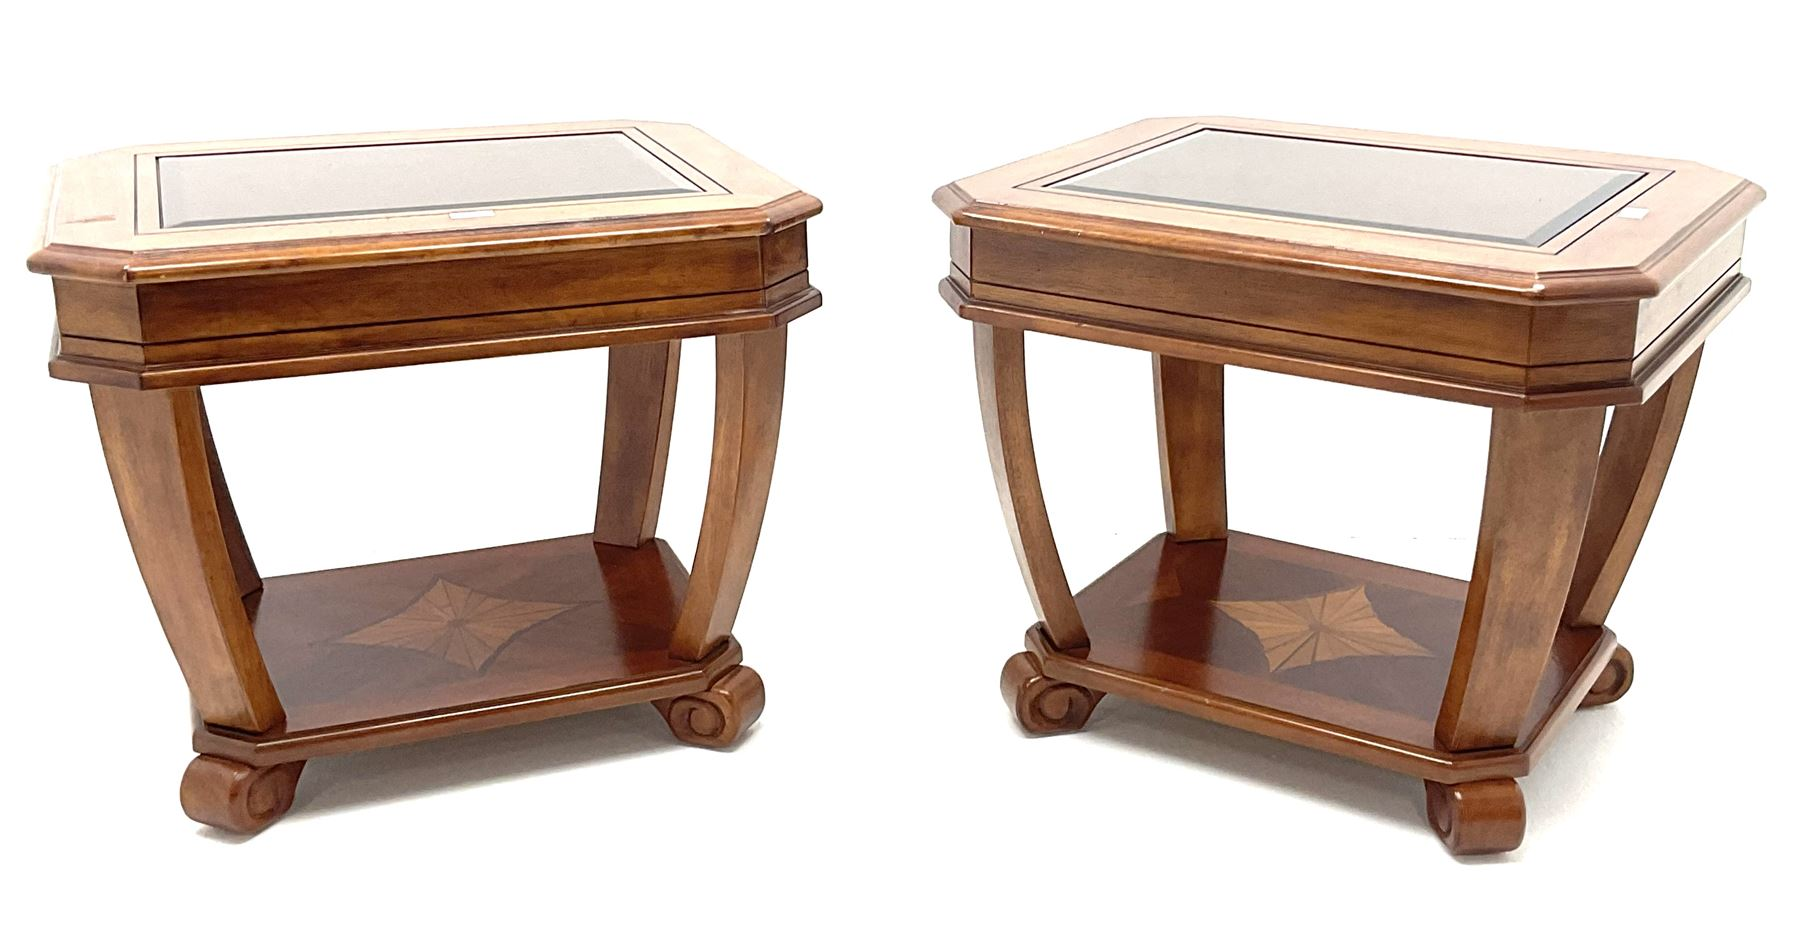 Pair walnut rectangular two tier lamp tables with inset glass tops - Image 2 of 4